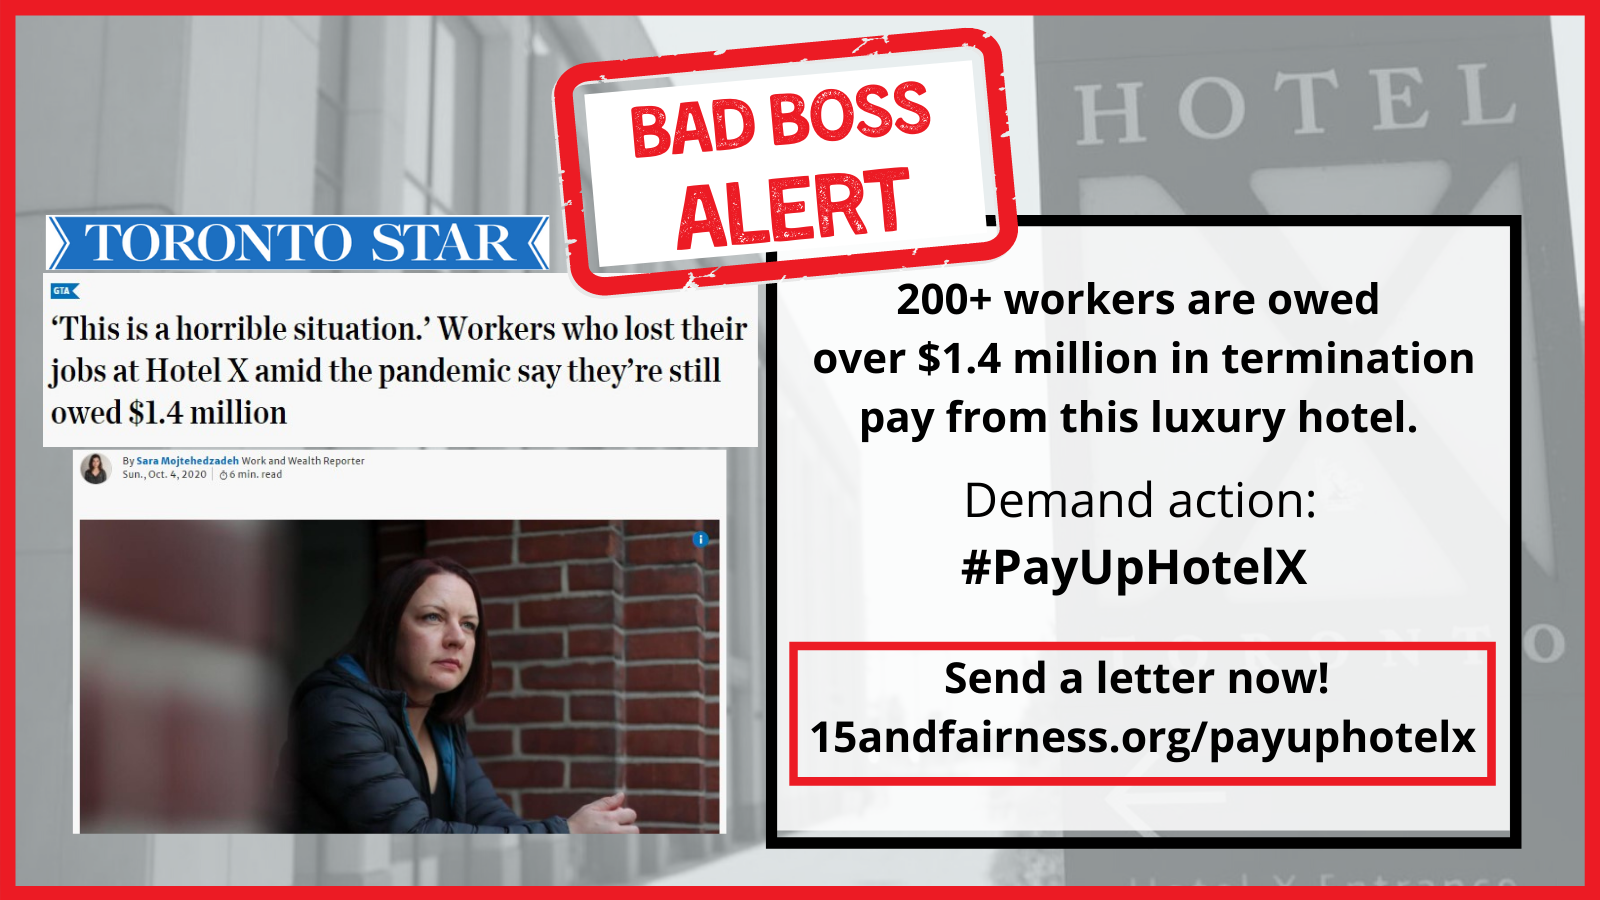 Send a letter to Hotel X demanding they pay up